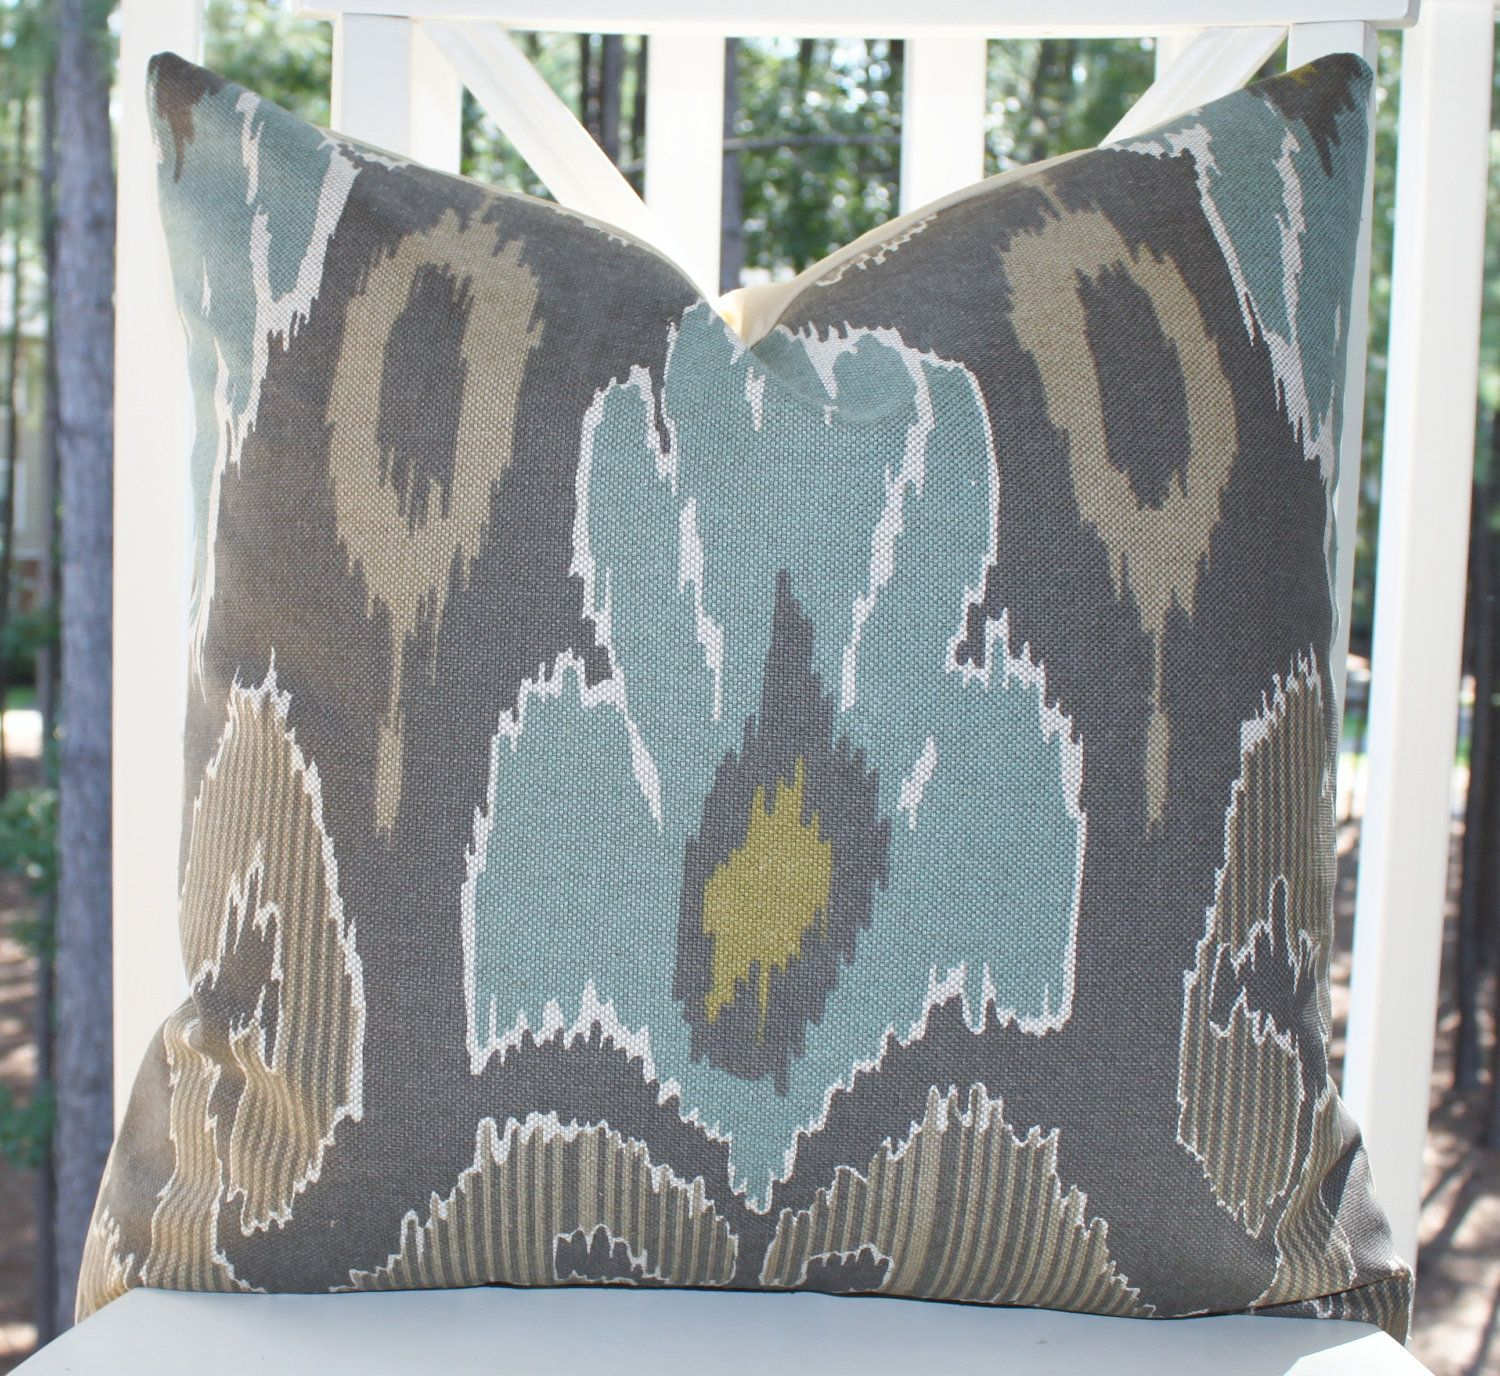 Brown and teal throw pillows - 17 Best Images About Decor Decorative Pillows On Pinterest Geometric Pillow Pillow Covers And Lumbar Pillow